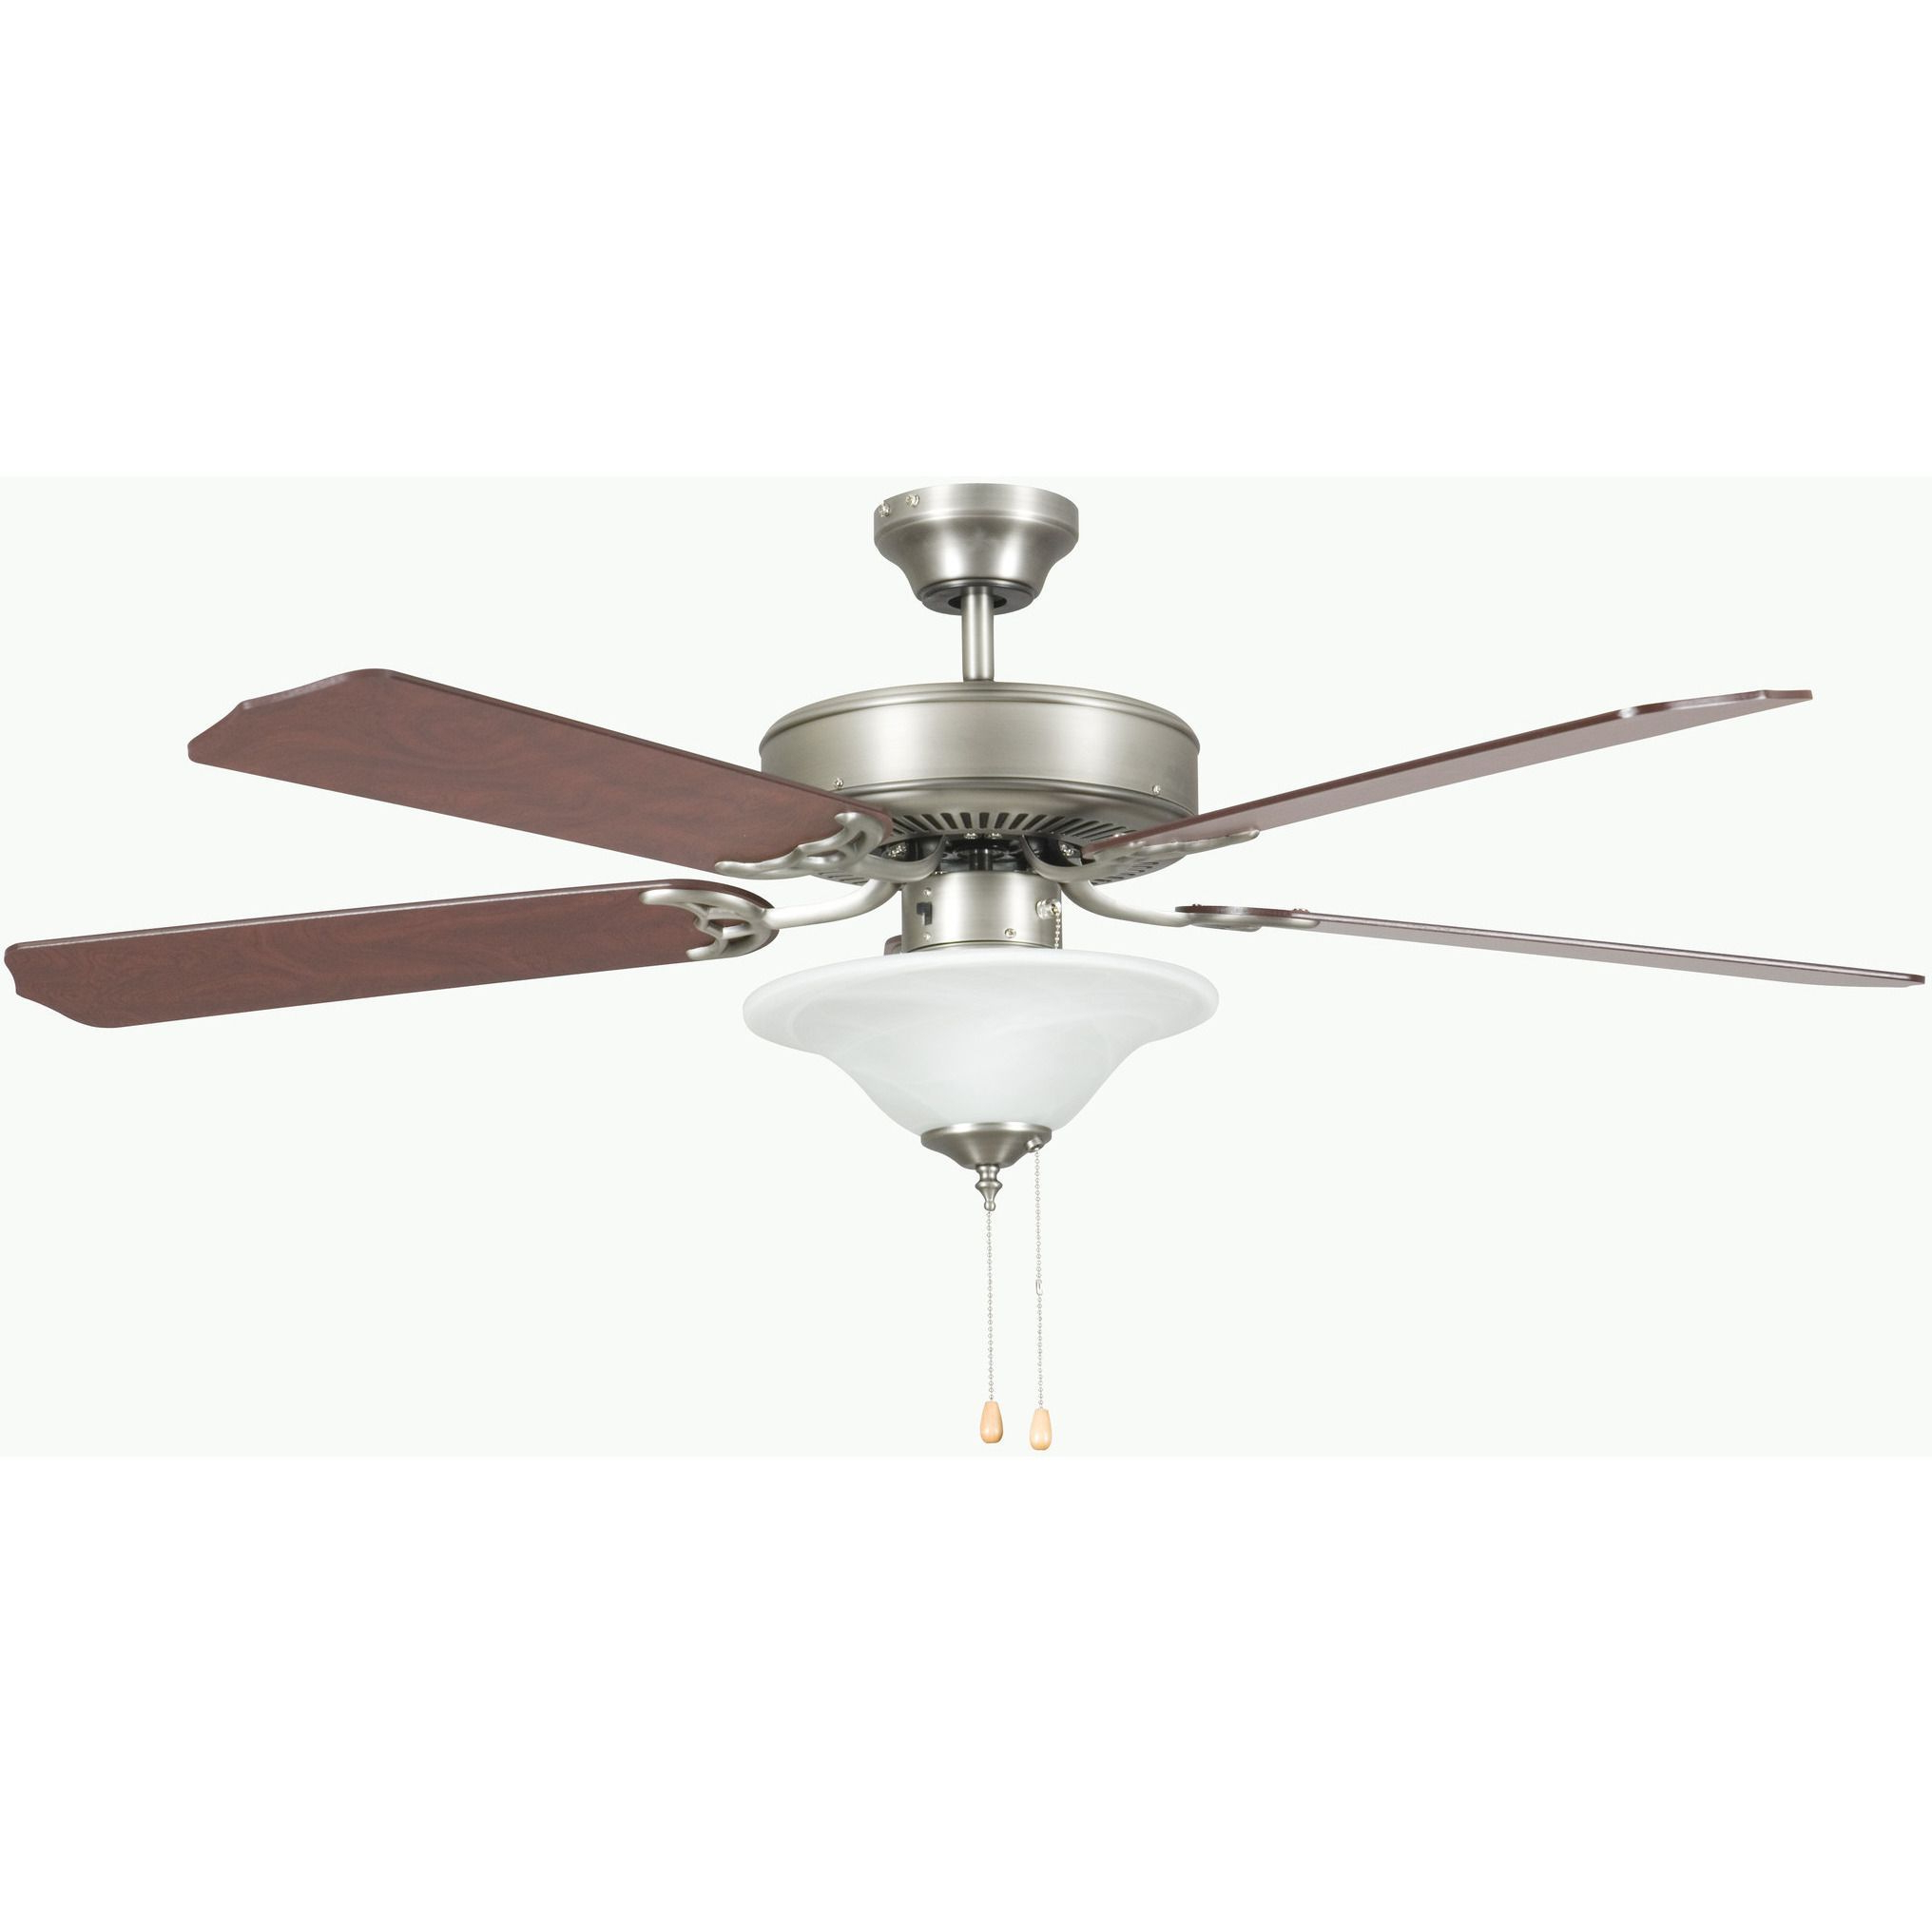 Trendy 52 Inch Heritage Square Fan W/lt Kit – Satin Nickel Energy Intended For Fredericksen 5 Blade Ceiling Fans (View 19 of 20)